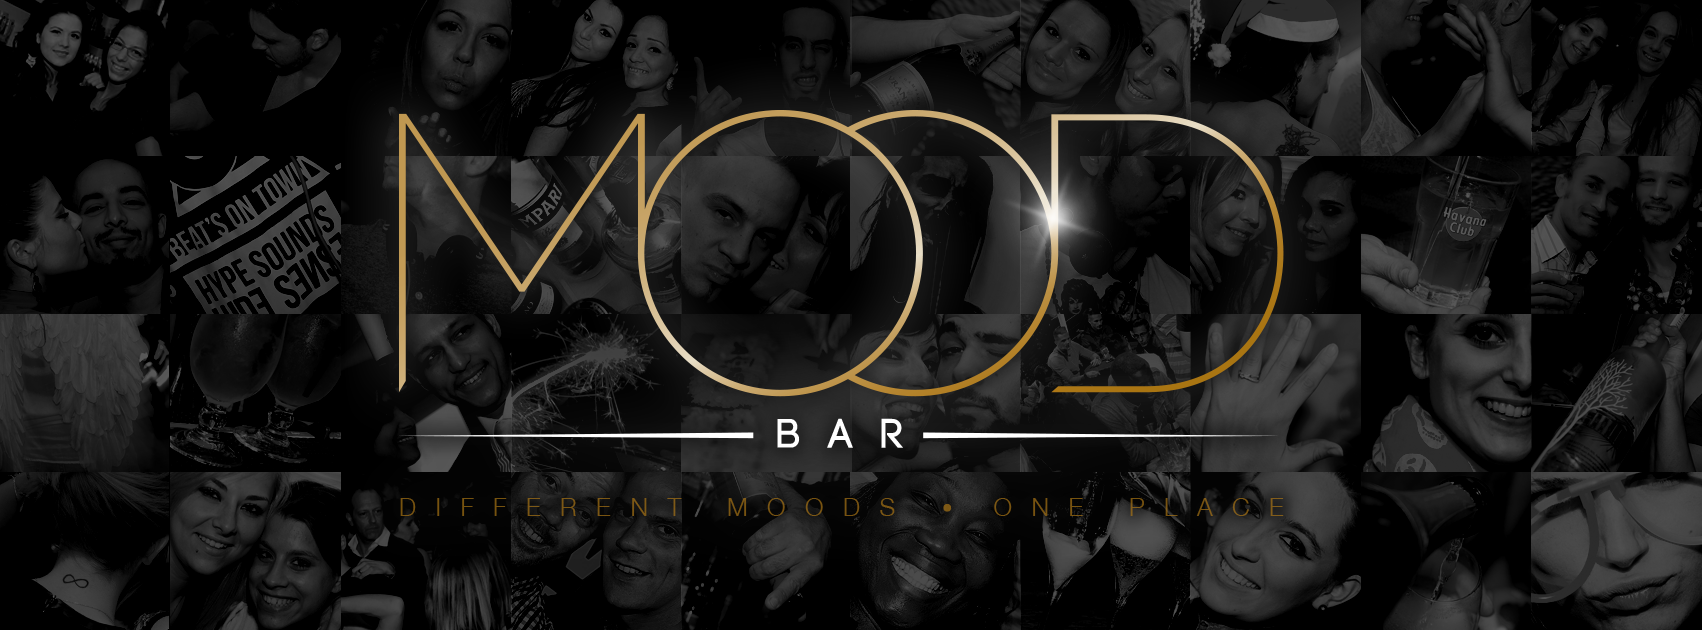 coverphoto-moodbar